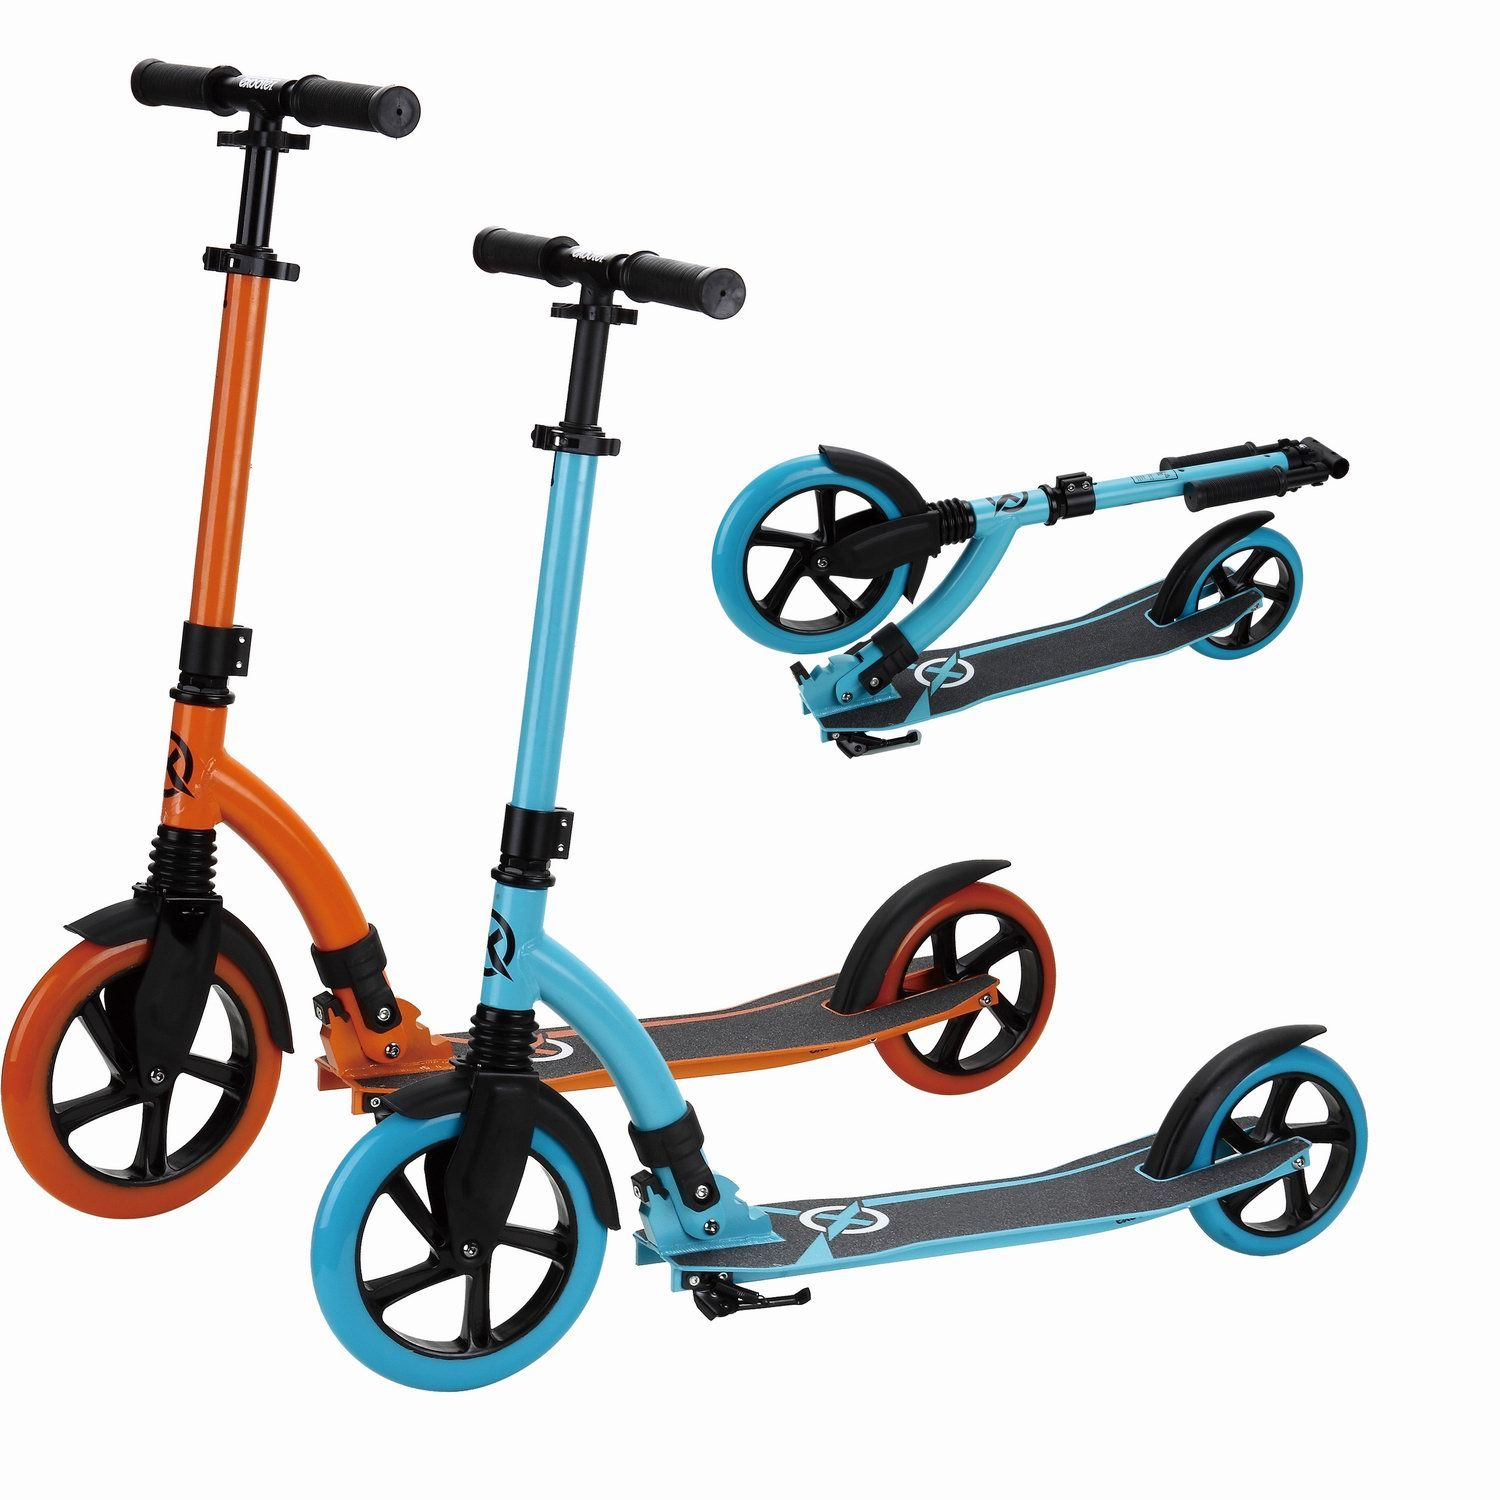 Scooter with Front 230mm Wheel and Rear 180mm Wheel